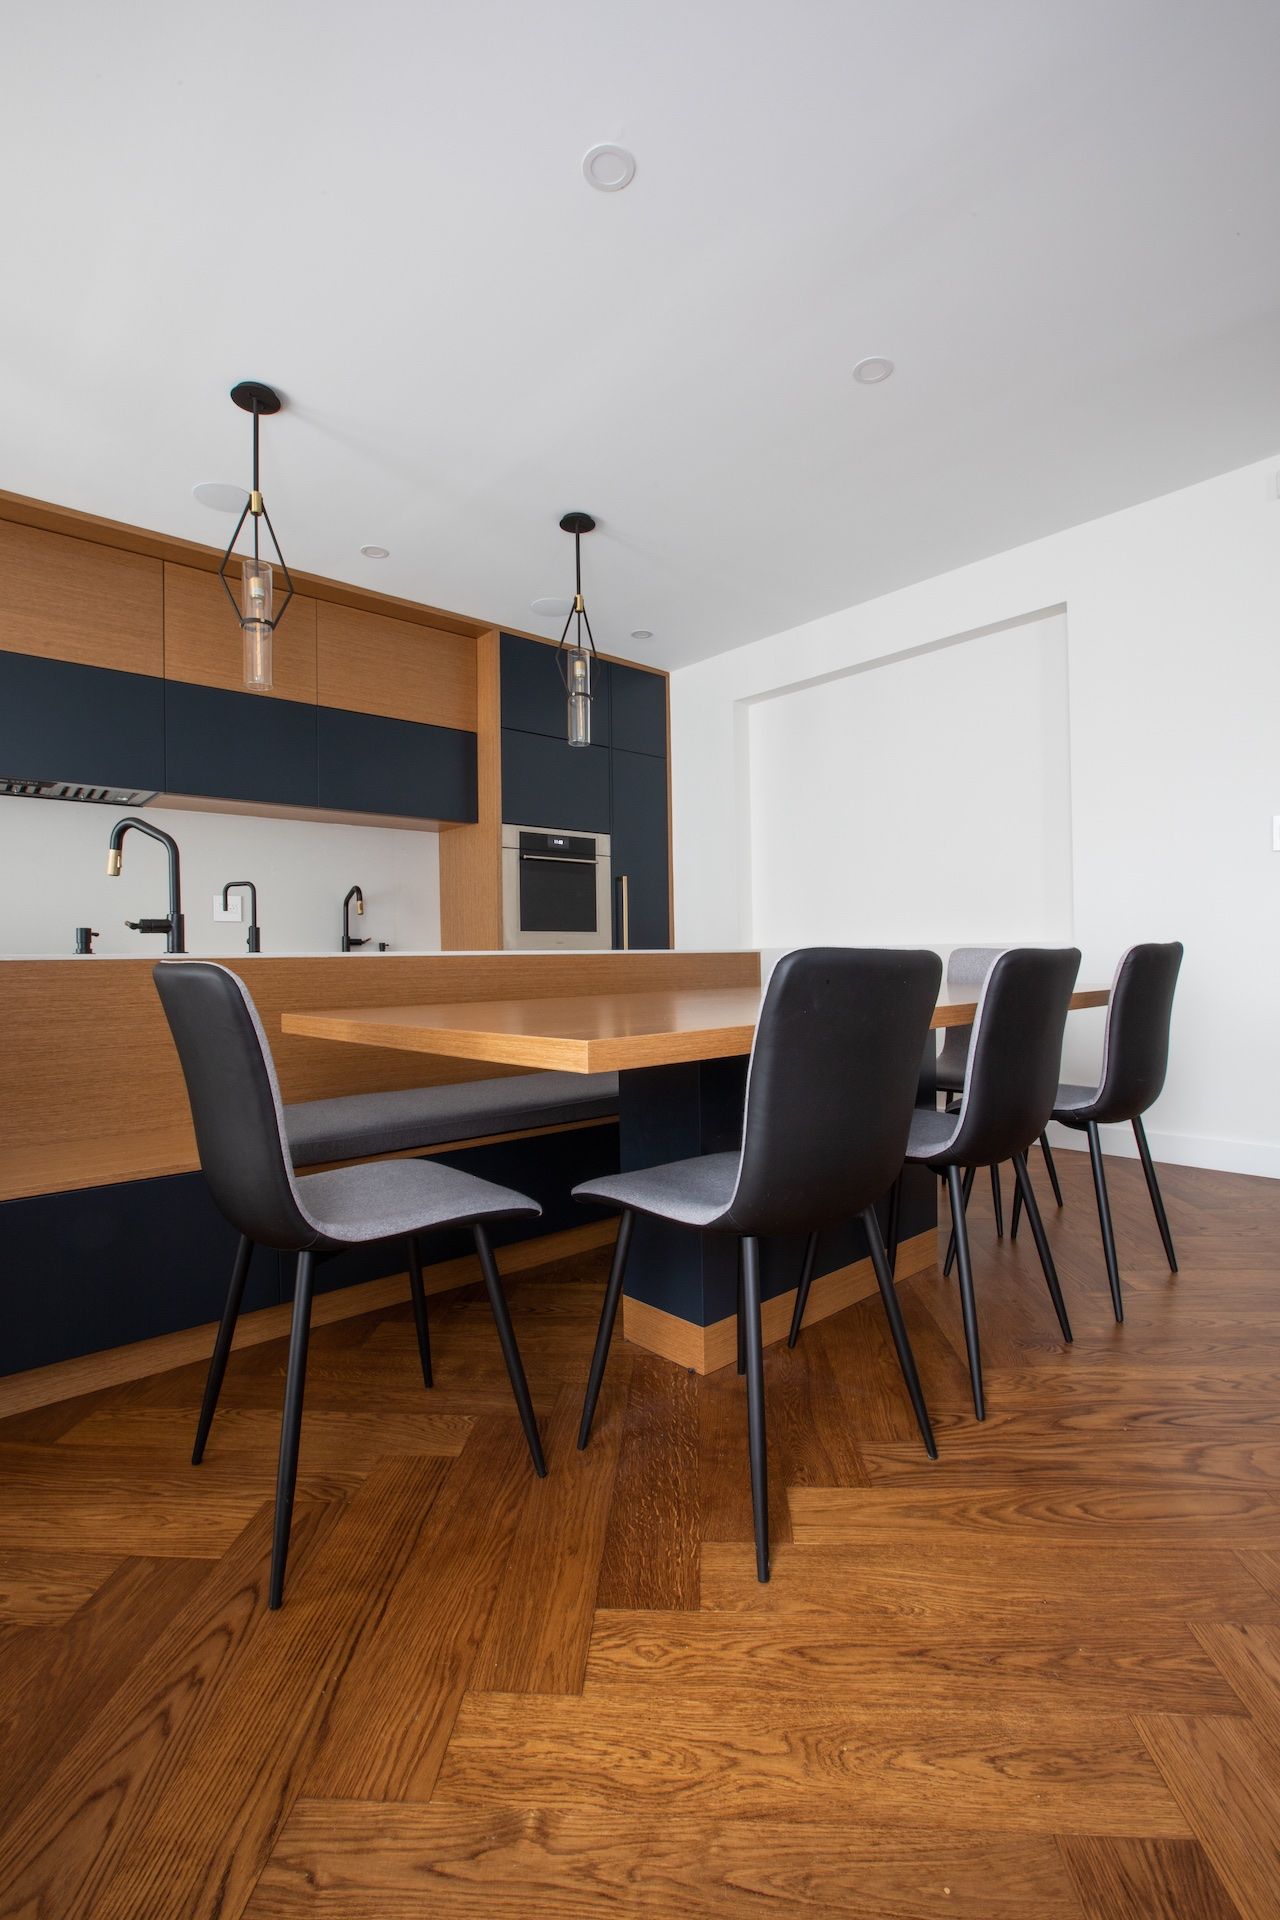 Natural wood table with black chairs